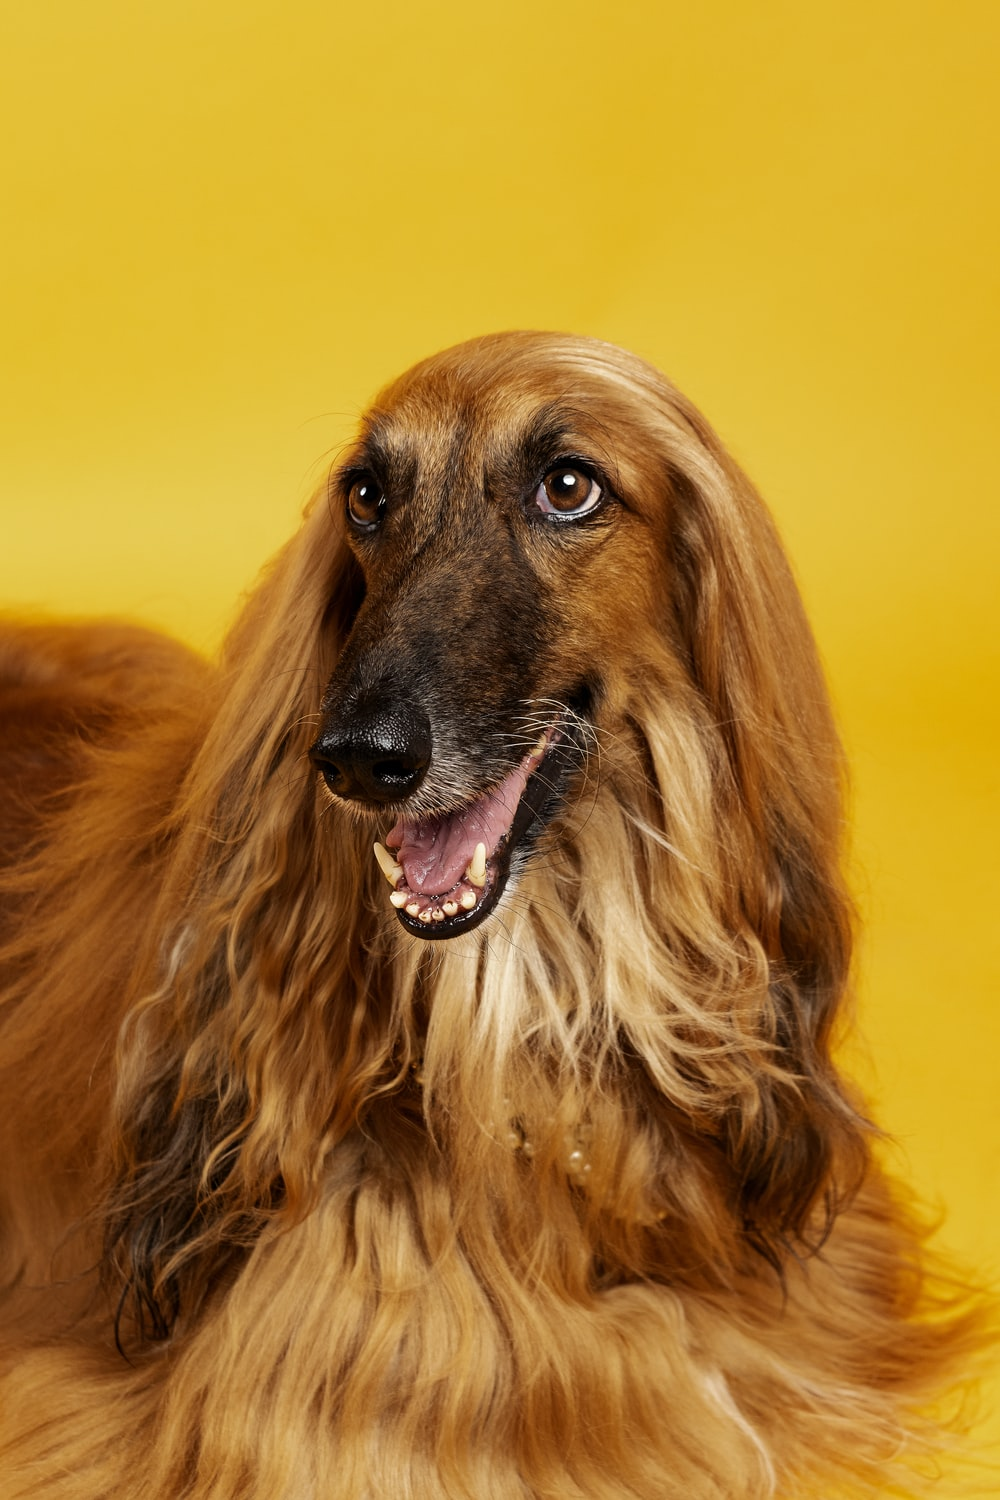 brown long haired dog with black eyes